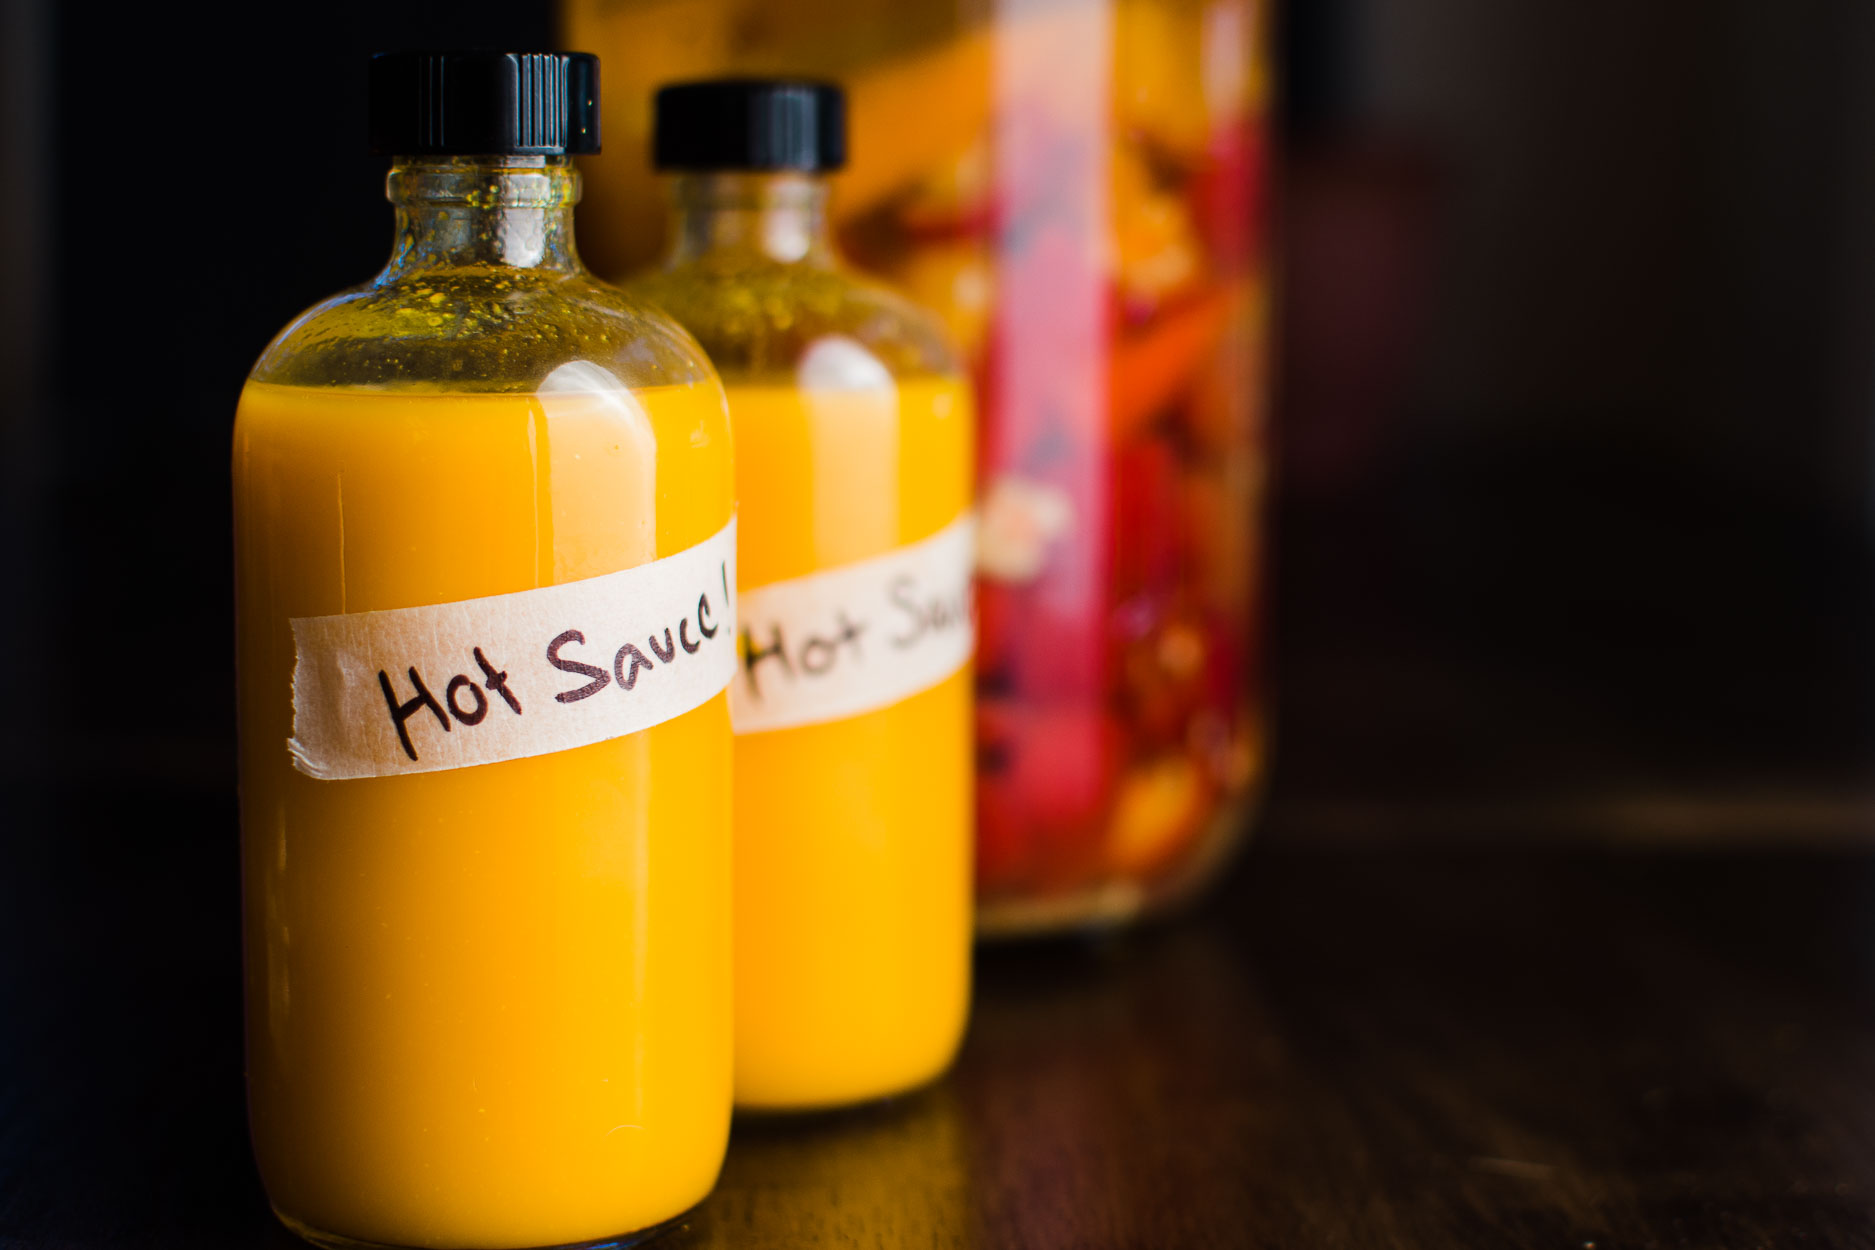 Fermented Hot Sauce recipe using hot chilies, garlic and sea salt.